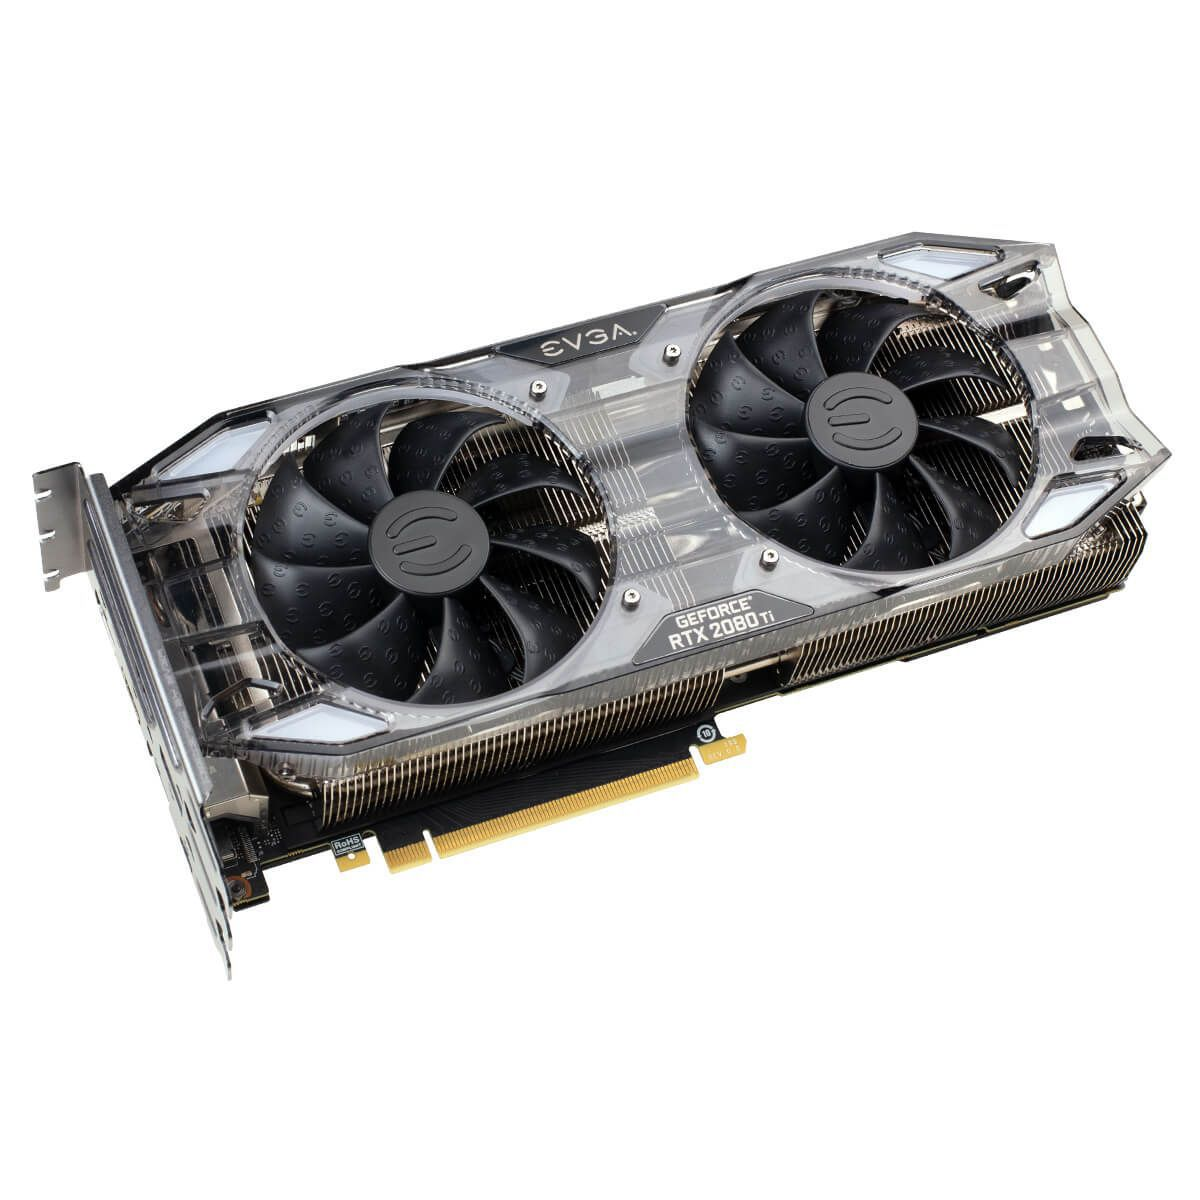 PLACA DE VIDEO NVIDIA GEFORCE RTX 2080 TI XC ULTRA 11GB GDDR6 11G-P4-2383-KR